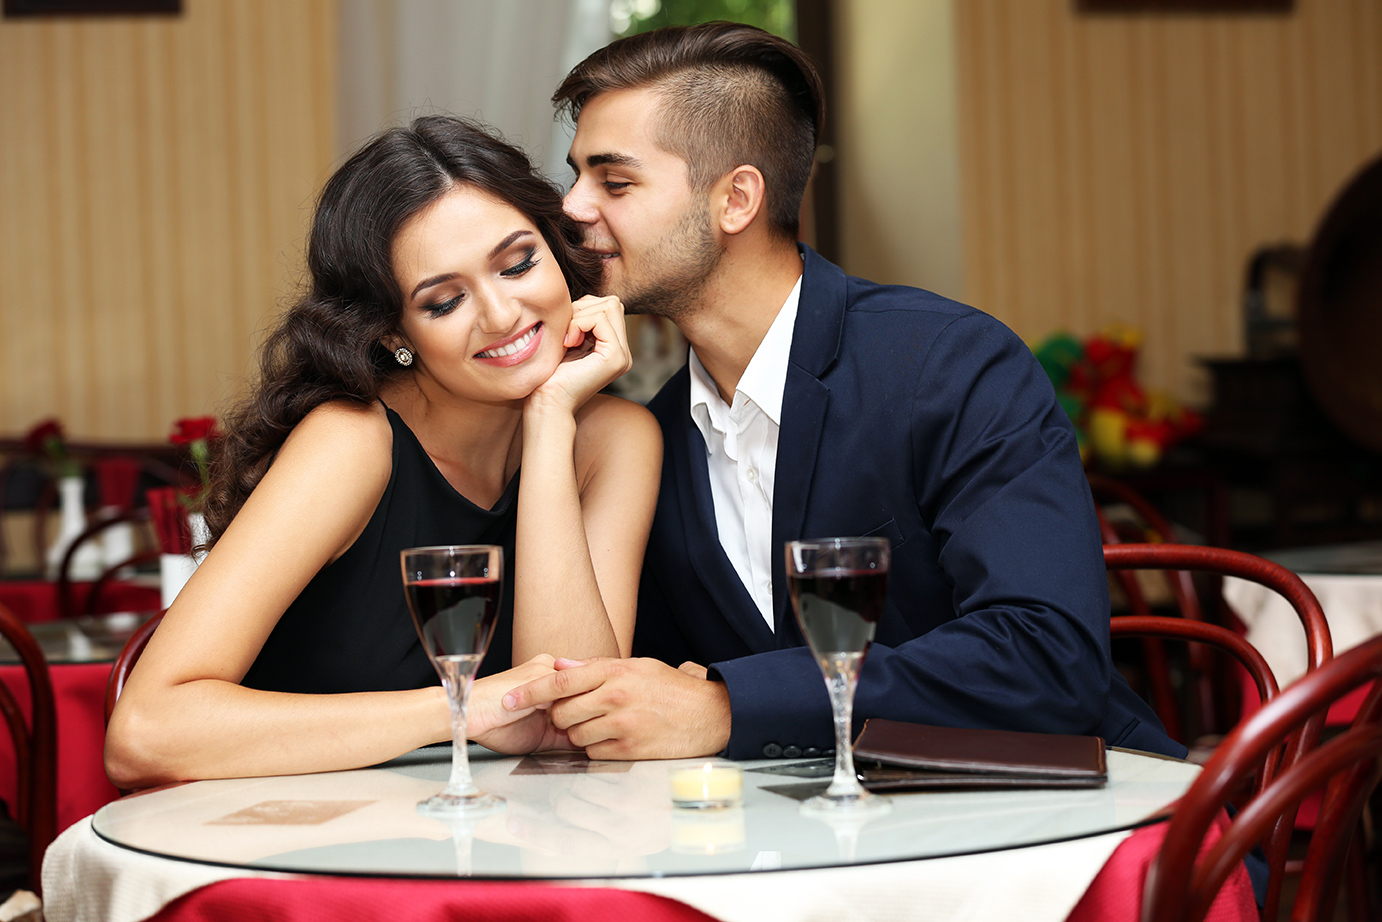 with you agree. fast top 10 nigerian free dating site youtube.com criticism write the variants